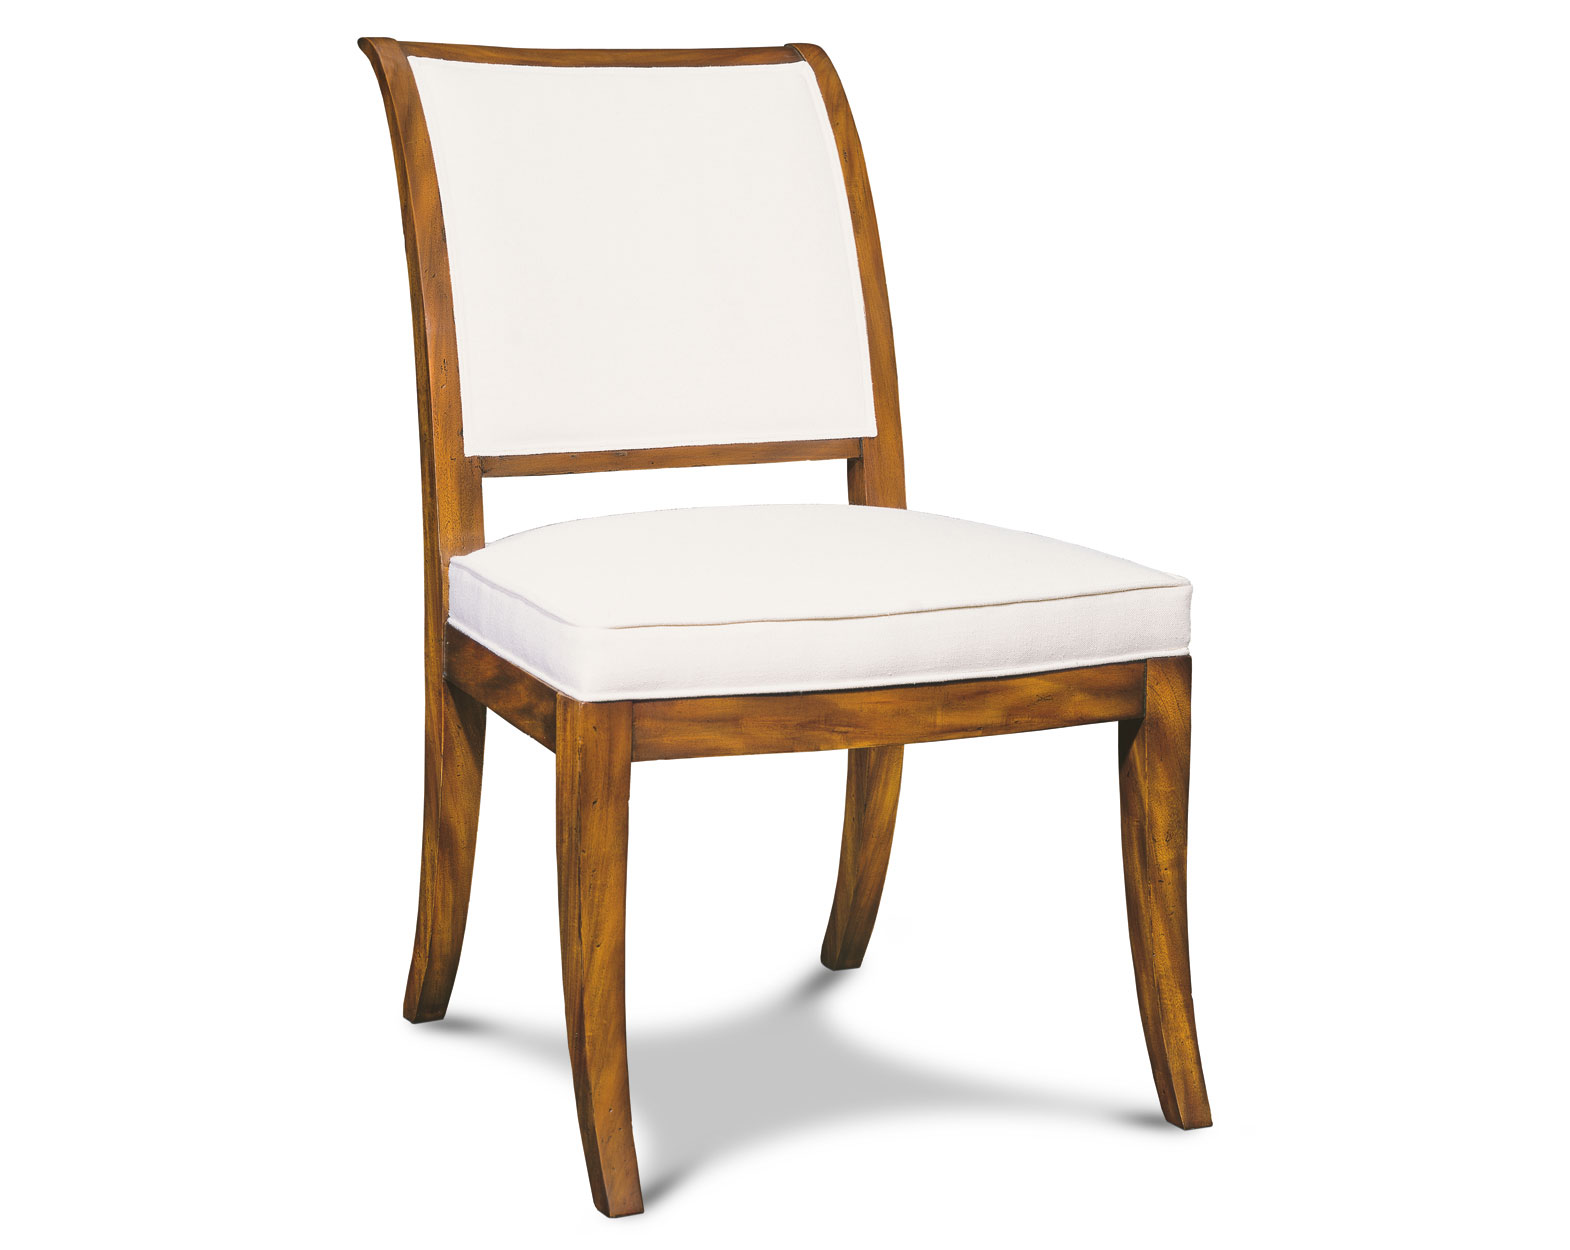 VIENA II SIDE CHAIR